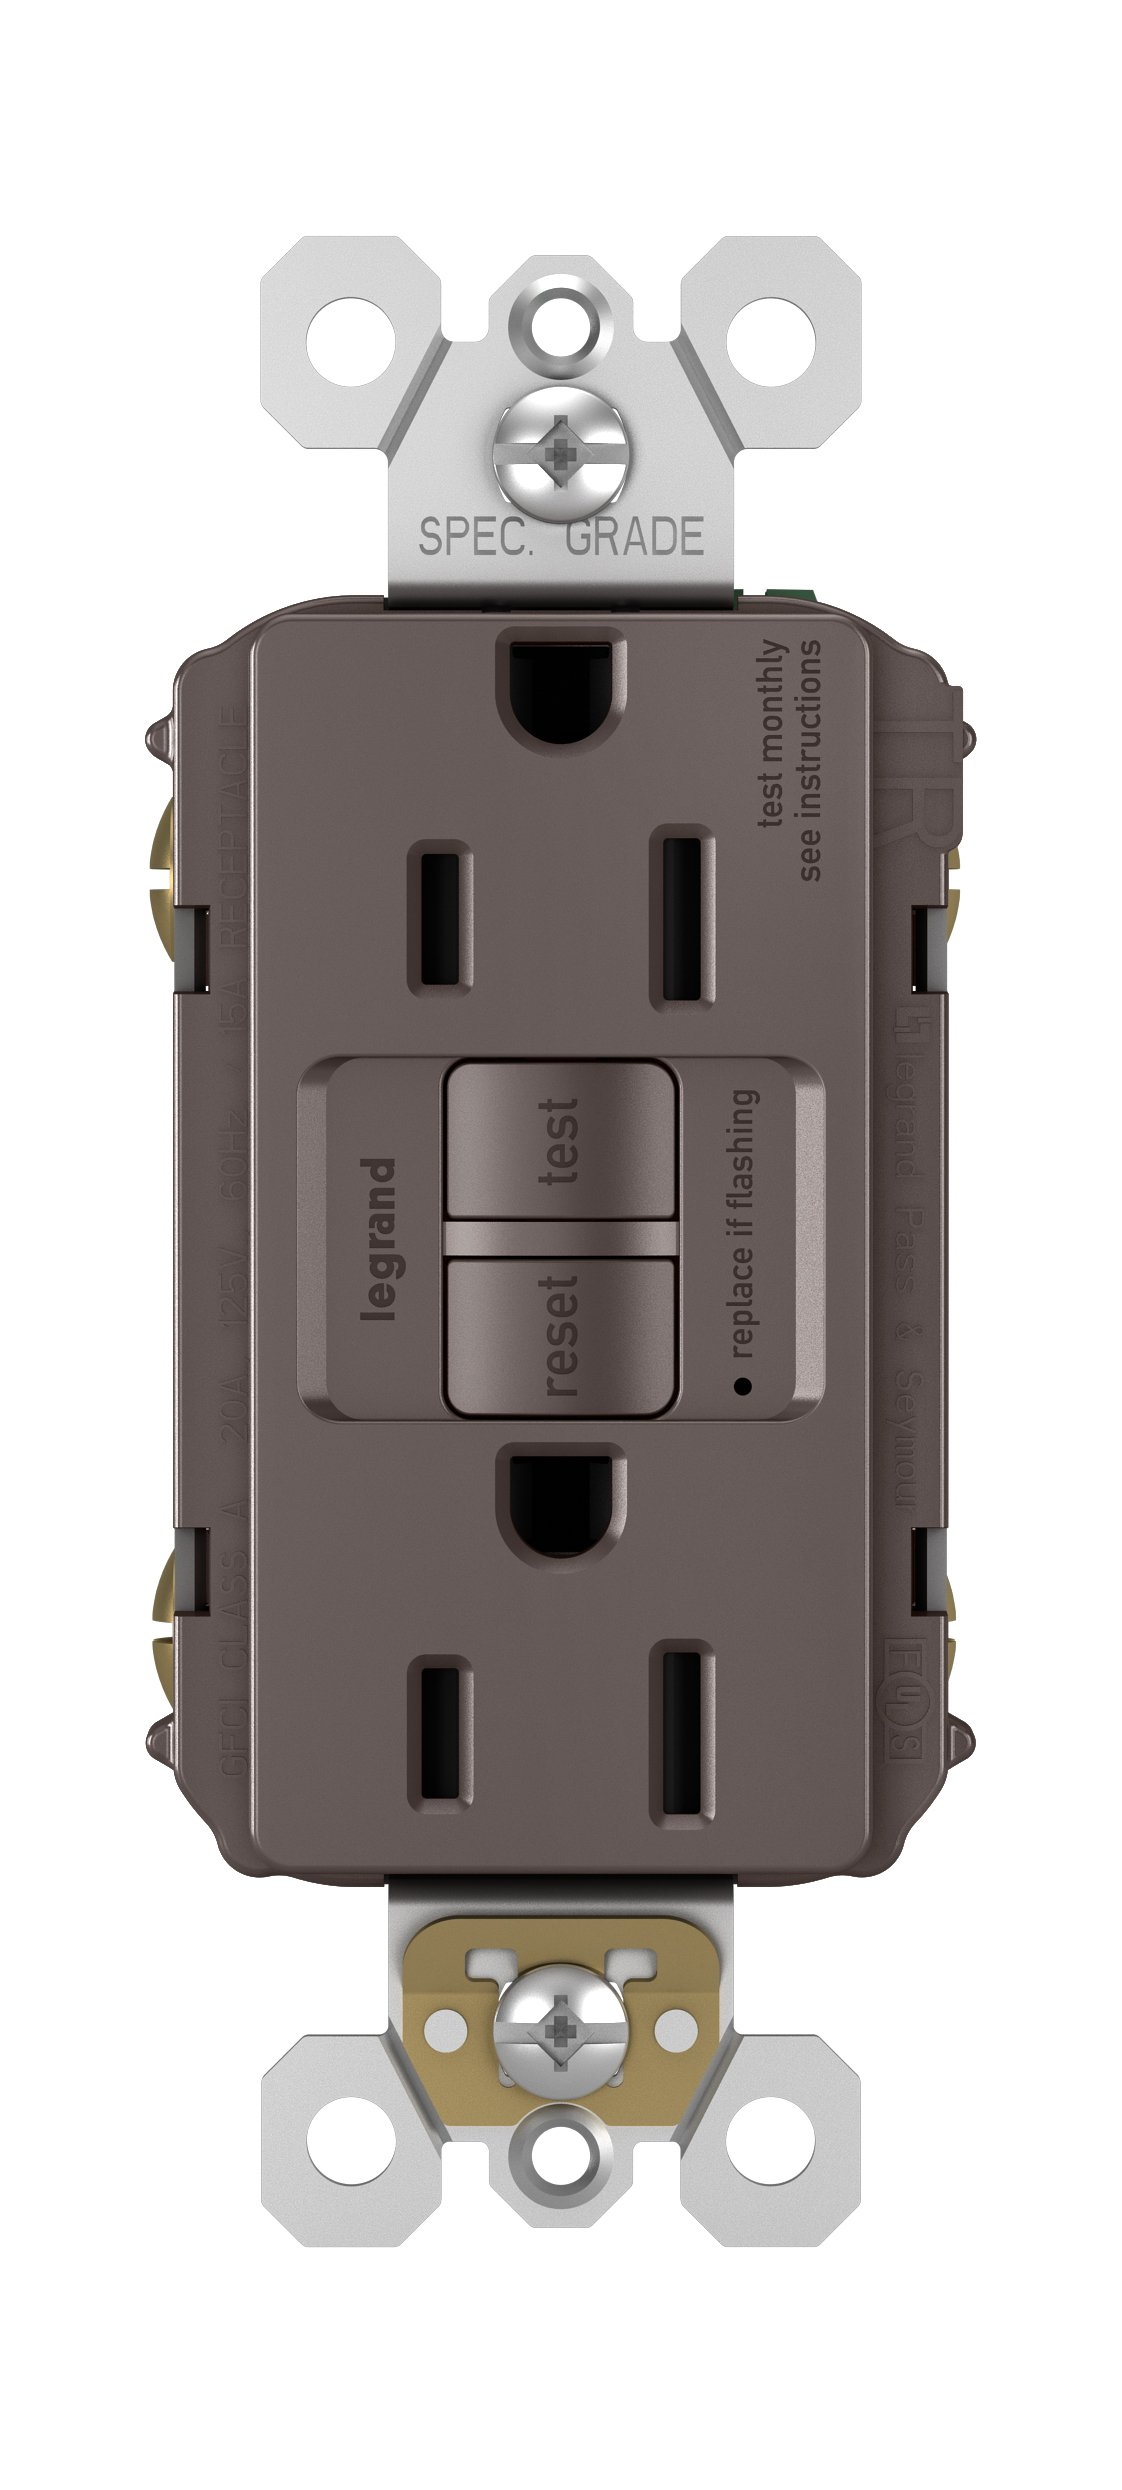 Legrand-Pass & Seymour 1597TRCC4 Self-Test GFCI Receptacle Outlet with Wall Plate, 15Amp 125V, Brown